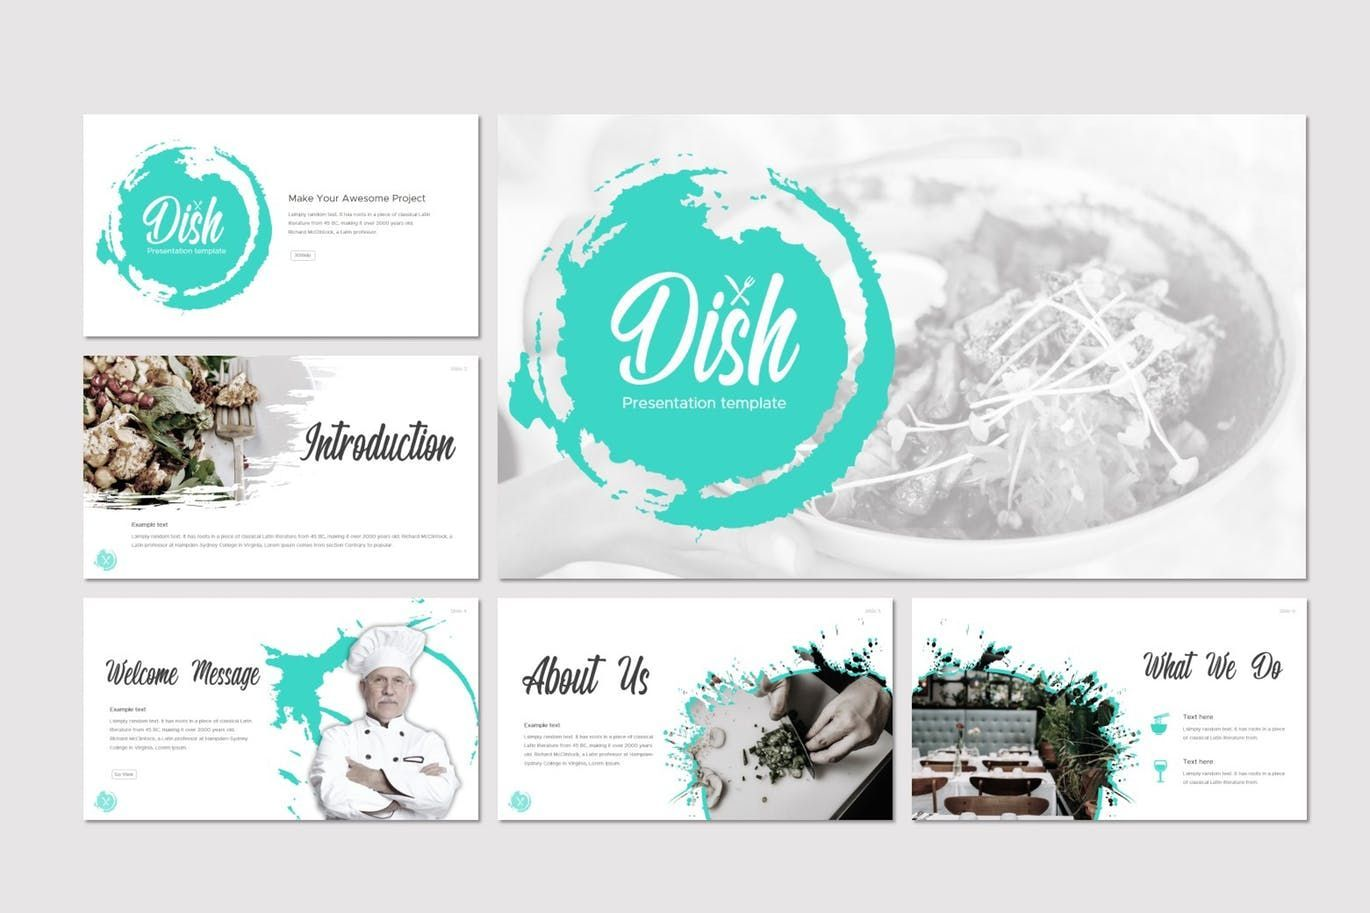 Dish - Google Slides Template, Slide 2, 07724, Presentation Templates — PoweredTemplate.com